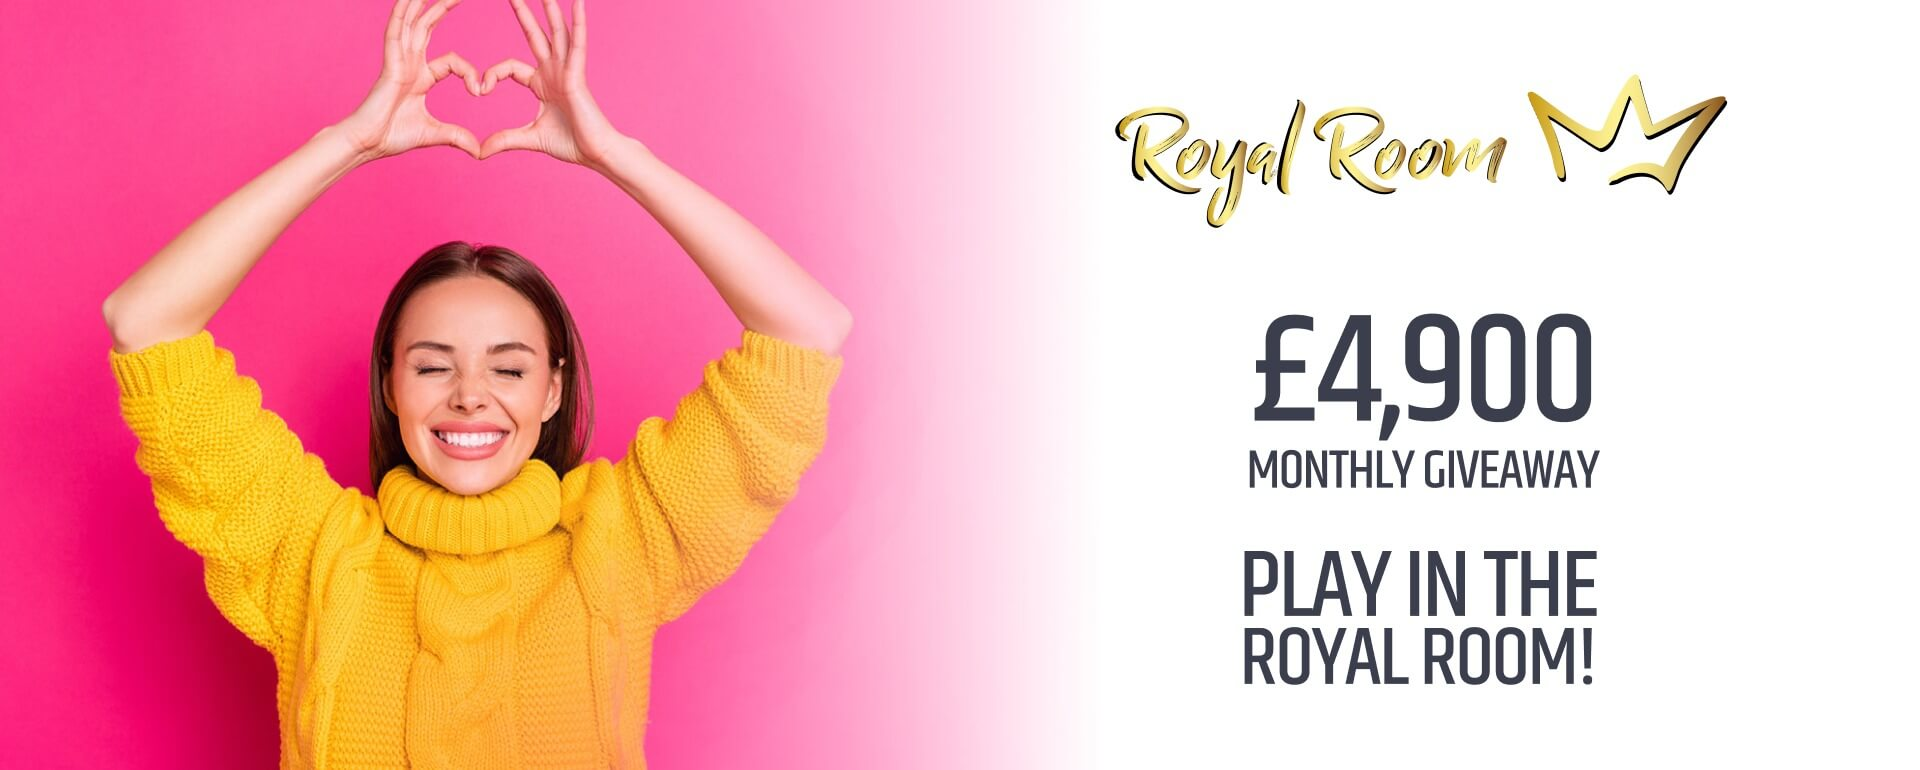 Play in our exclusive Monthly Giveaway Royal Room!